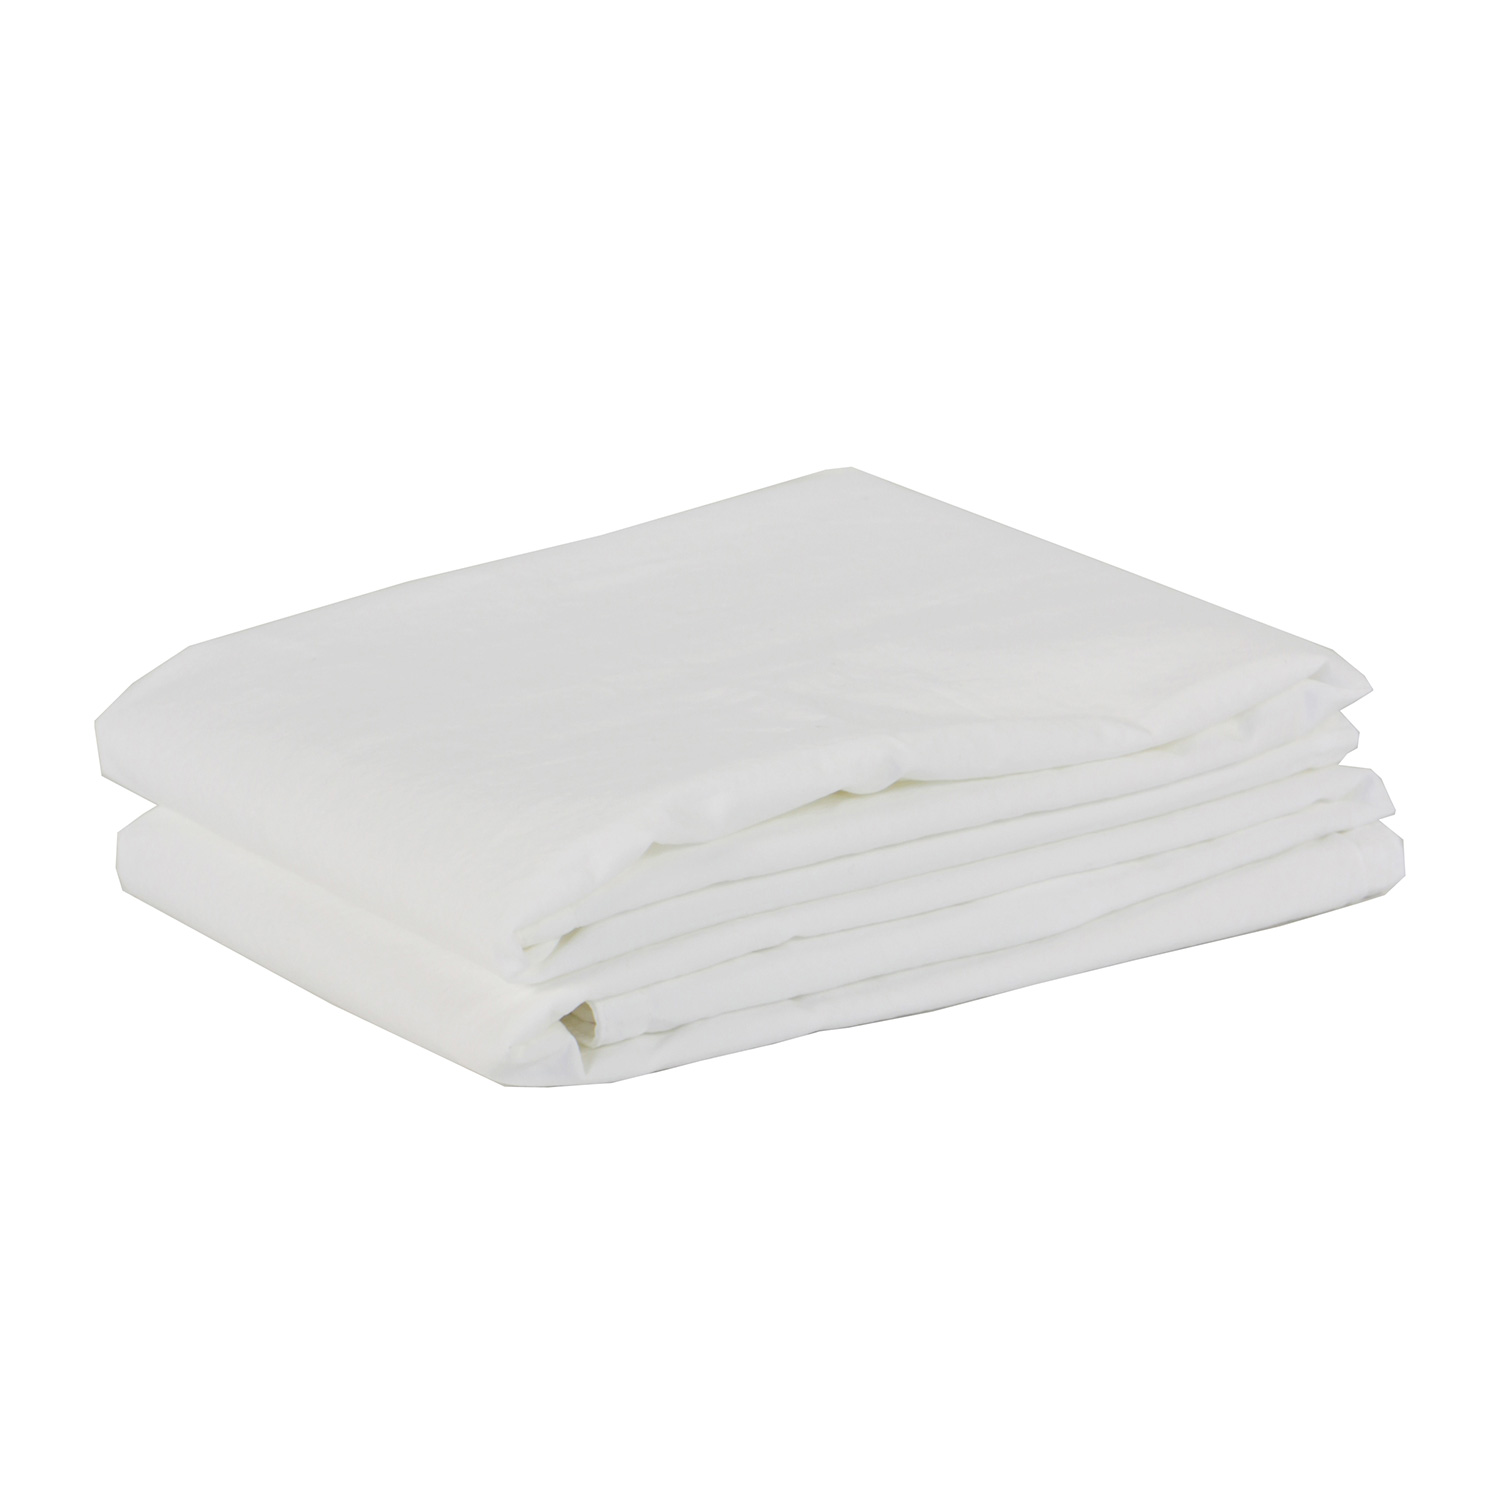 Cotton örngott 50x60 2-pack, bleached white